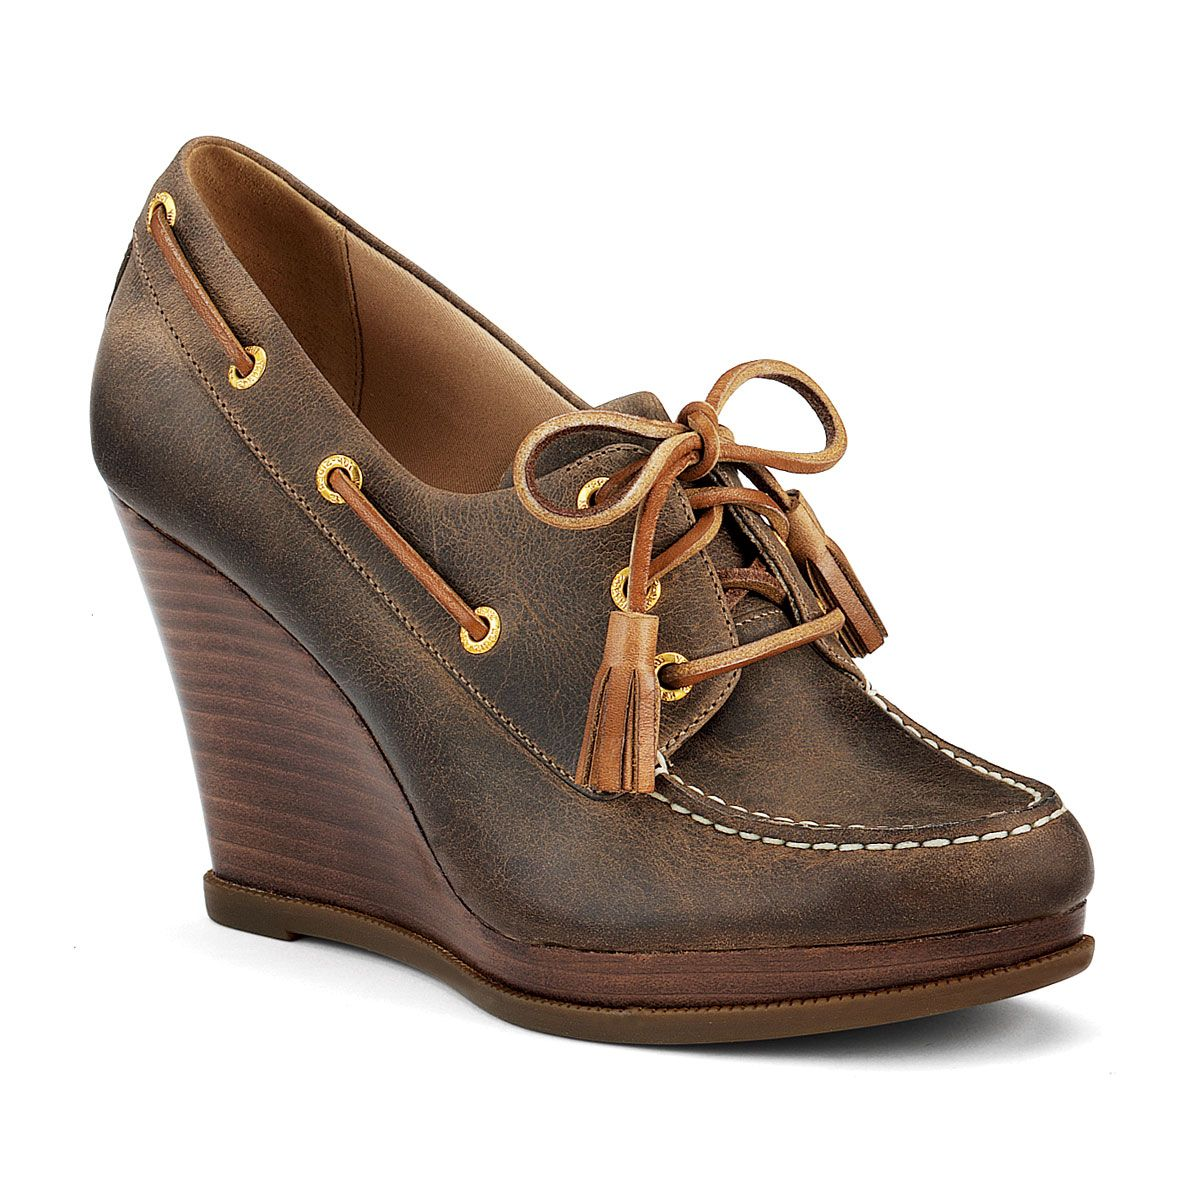 Boat shoes mens, Sperrys, Sperry boat shoes